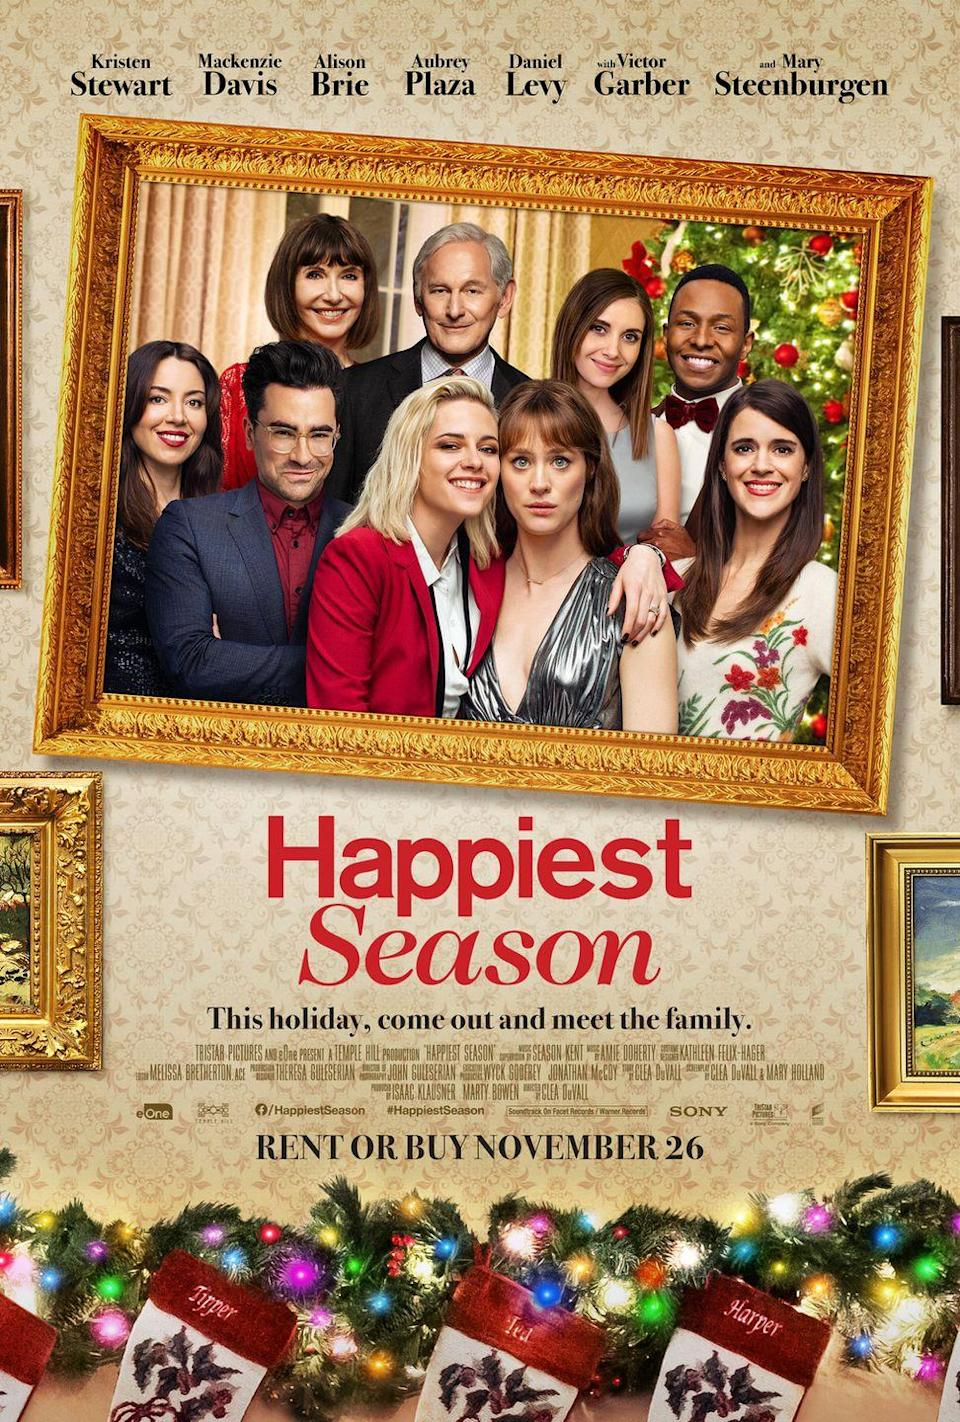 """<p>When Abby decides to attend Christmas with her girlfriend Harper's family, she's shocked to find out that Harper has kept their romantic relationship a secret from her family. As they navigate a complicated family dynamic, Abby begins to wonder how well she really knows Harper.</p><p><a class=""""link rapid-noclick-resp"""" href=""""https://go.redirectingat.com?id=74968X1596630&url=https%3A%2F%2Fwww.hulu.com%2Fmovie%2Fhappiest-season-8bd1884d-b39d-4dc7-9c44-29f07de2f1ef&sref=https%3A%2F%2Fwww.womansday.com%2Flife%2Fentertainment%2Fg29702471%2Fnew-christmas-movies%2F"""" rel=""""nofollow noopener"""" target=""""_blank"""" data-ylk=""""slk:STREAM NOW"""">STREAM NOW</a></p>"""